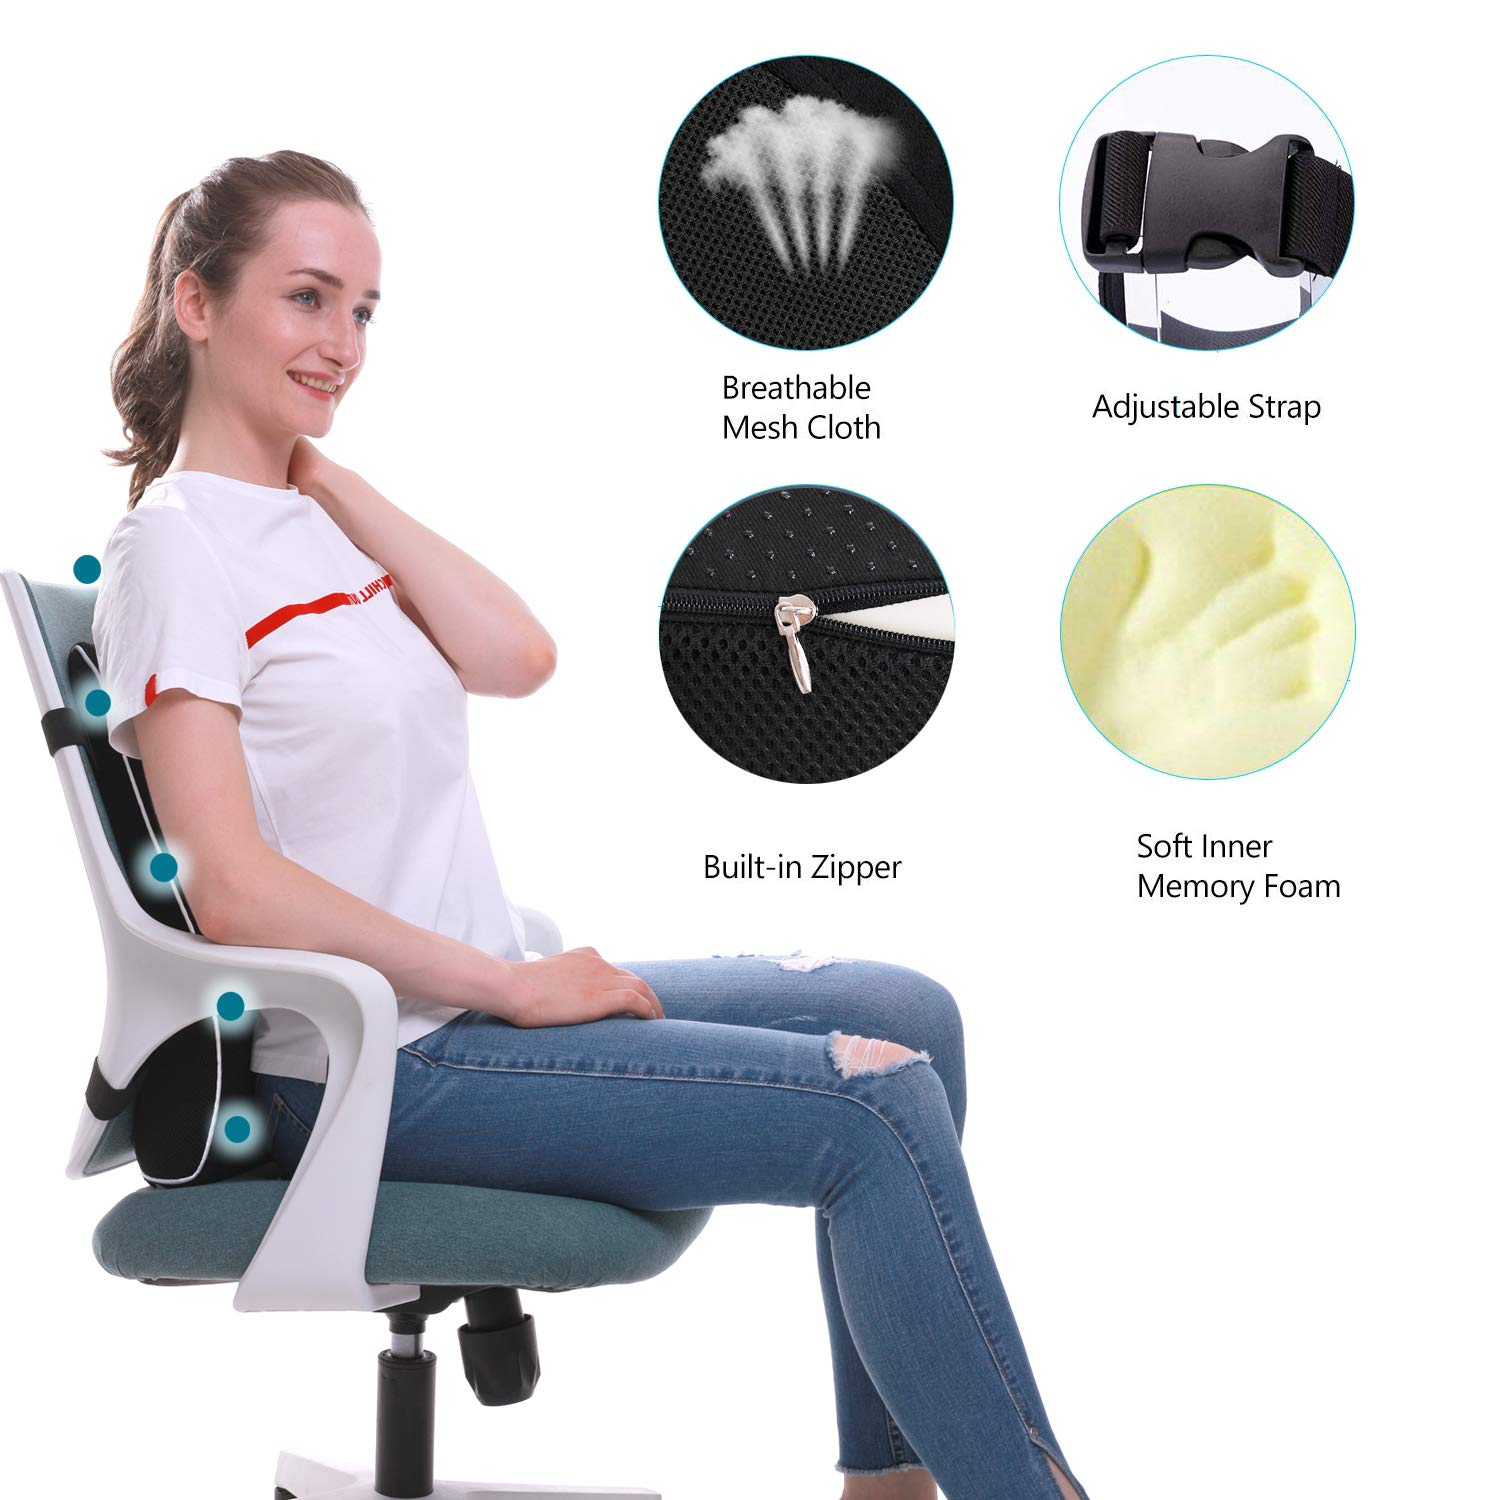 Recliner Breathable 3d Mesh Cover Double Adjustable Straps Large Back Pillow For Car Lumbar Support For Office Chair Memory Foam Back Cushion For Back Pain Relief Improve Posture Computer Chair Lumbar Pillows